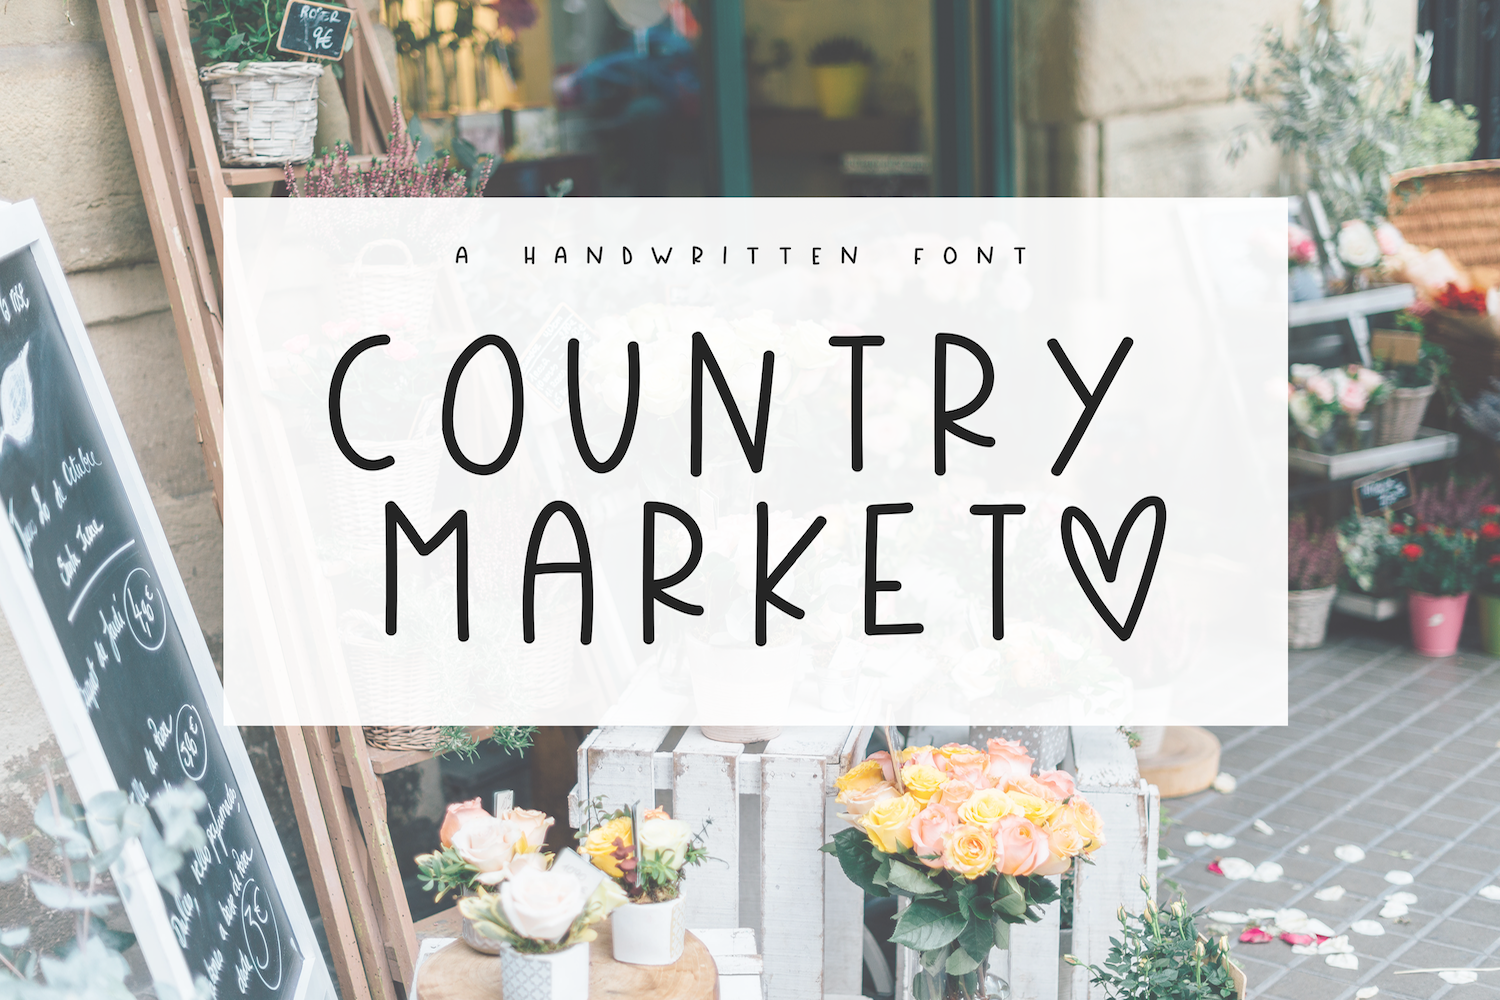 Country Market A Handwritten Display Font All caps